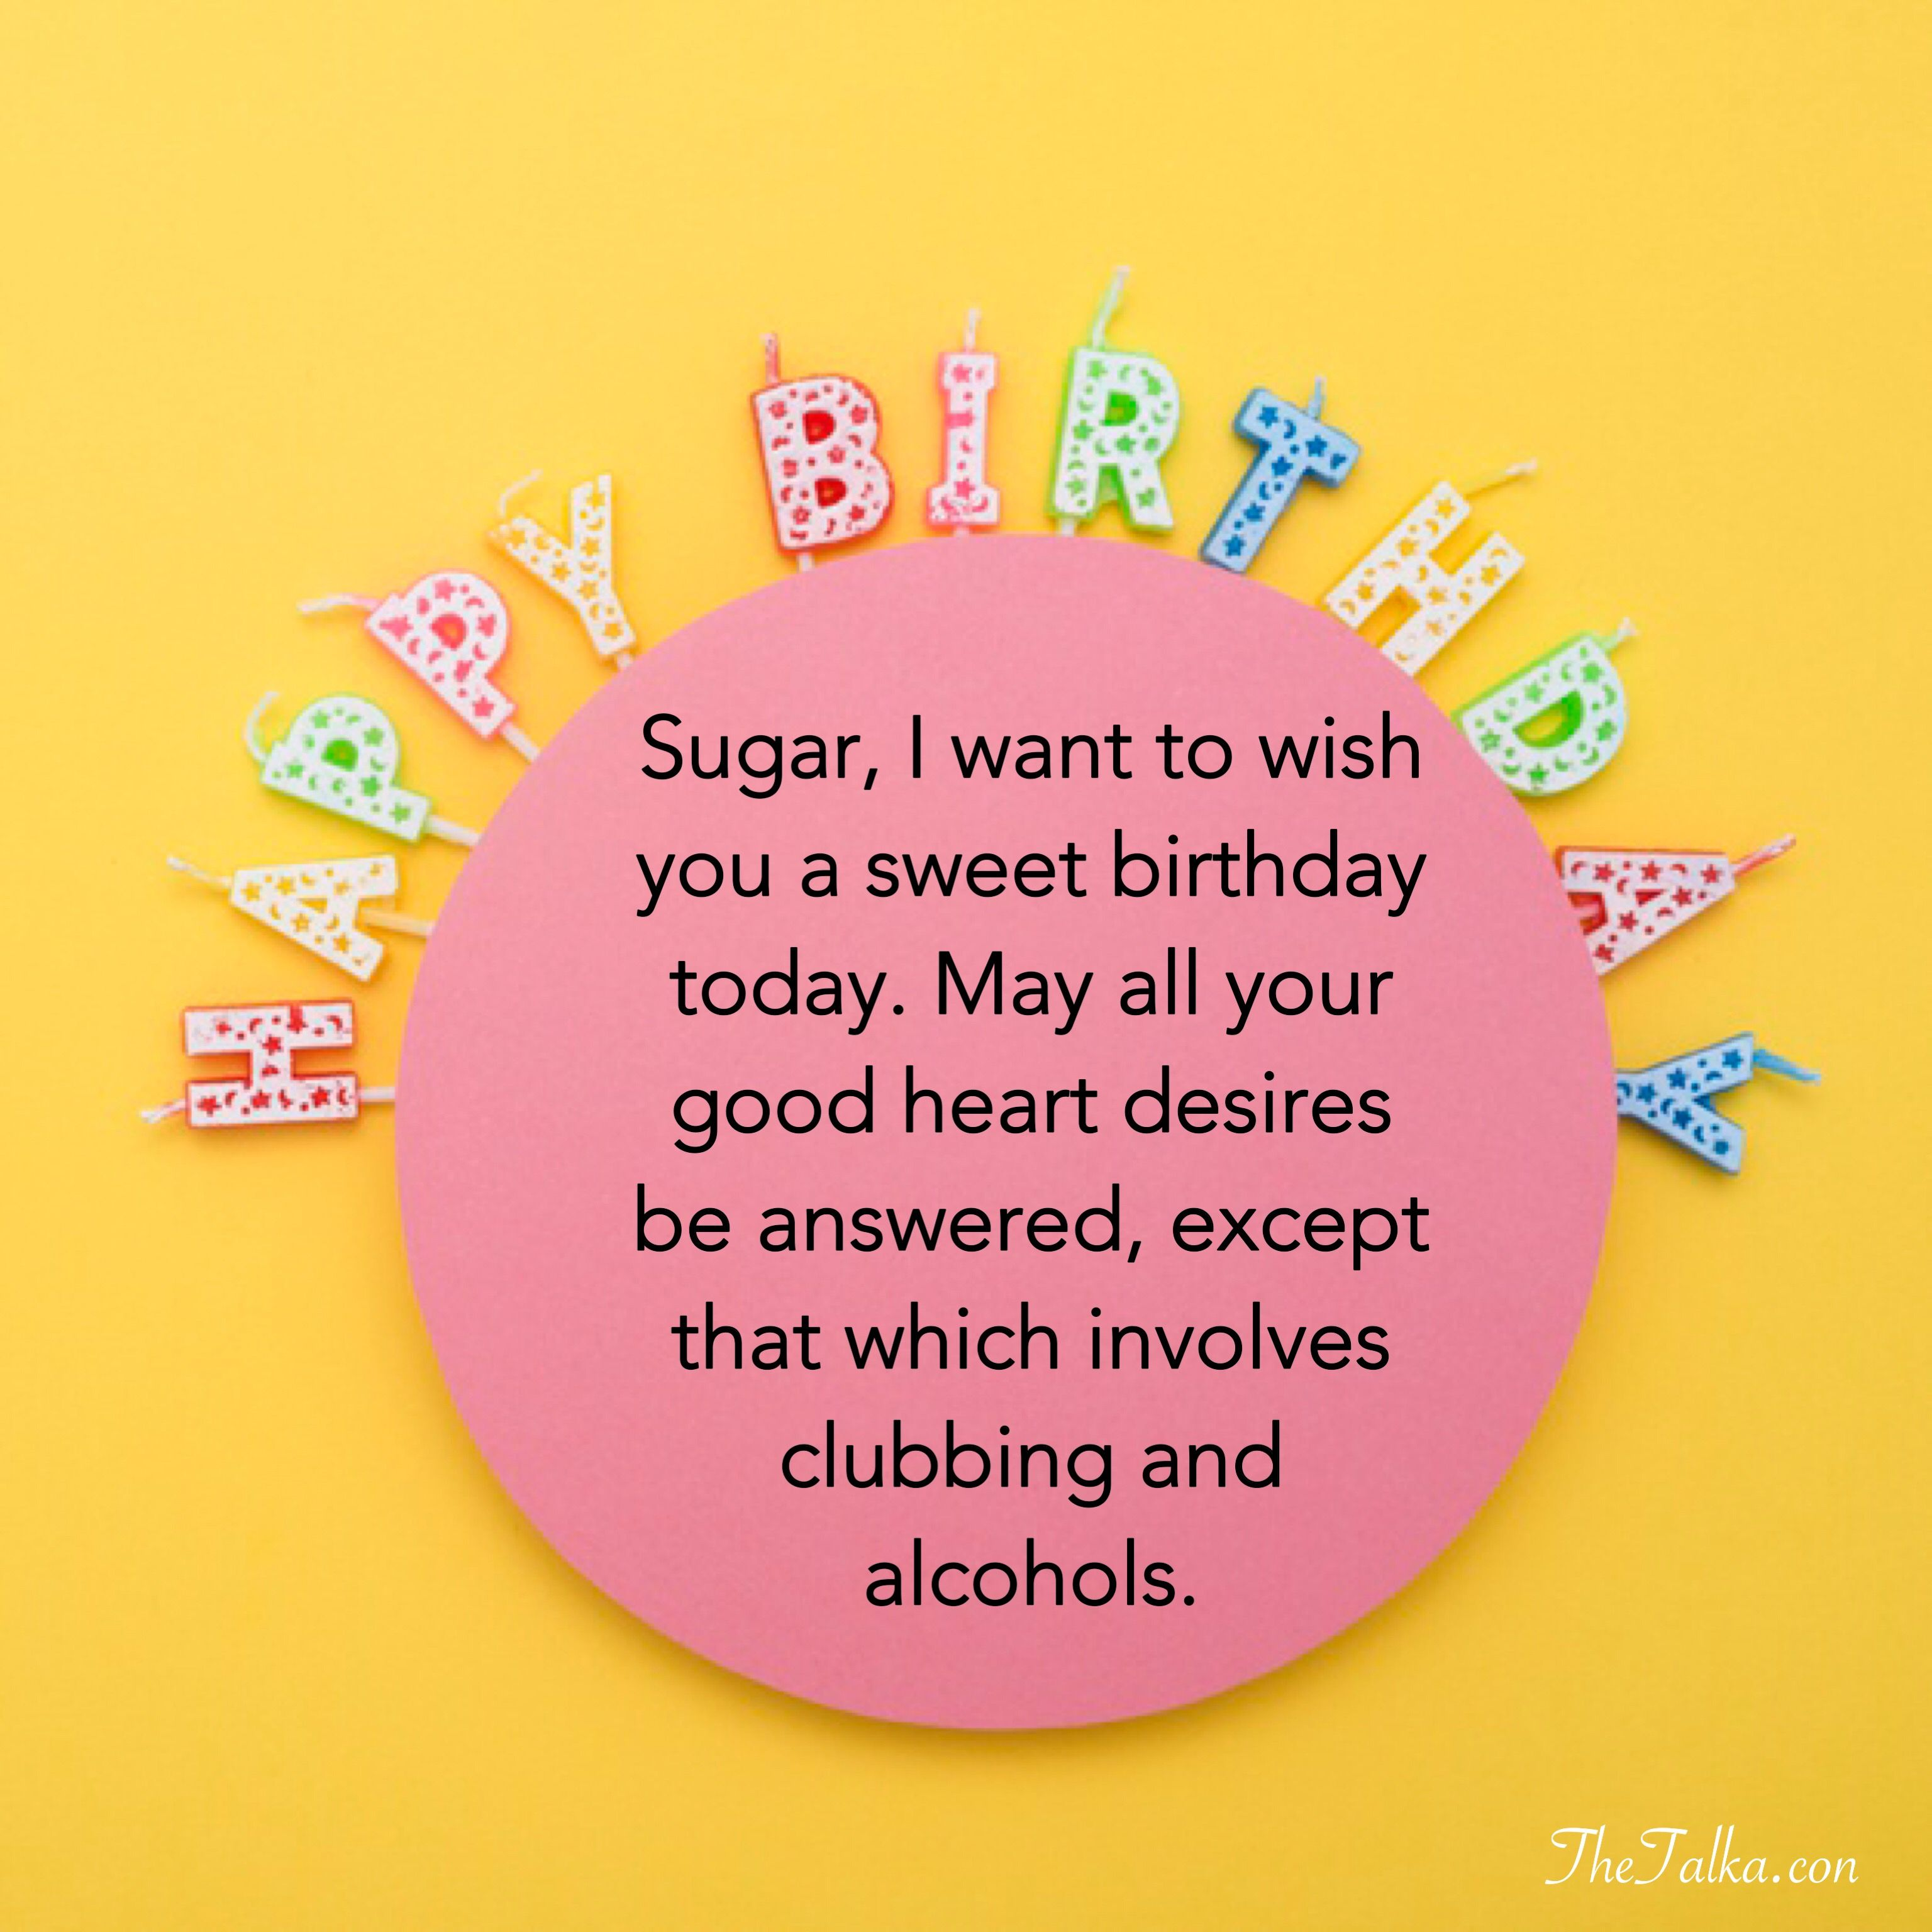 Birthday Wishes For Daughter Heartwarming Prayers Funny Wishes For Daughter Birthday Message For Daughter Birthday Wishes For Her